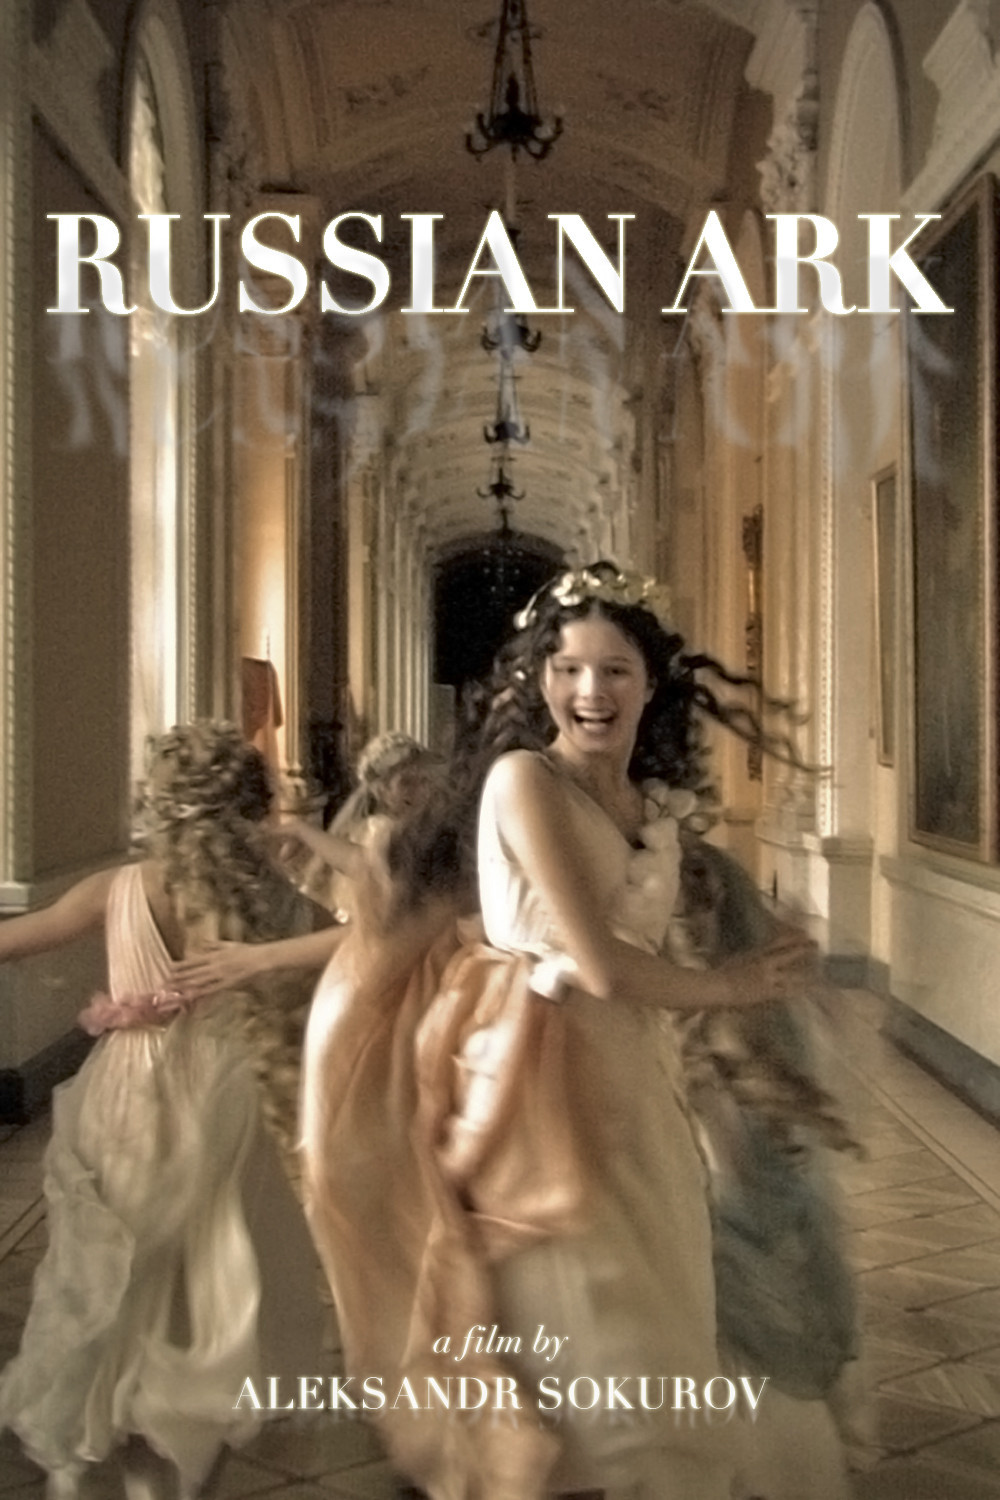 http://i2.wp.com/capeanncinema.files.wordpress.com/2013/10/russian_ark-poster.jpg